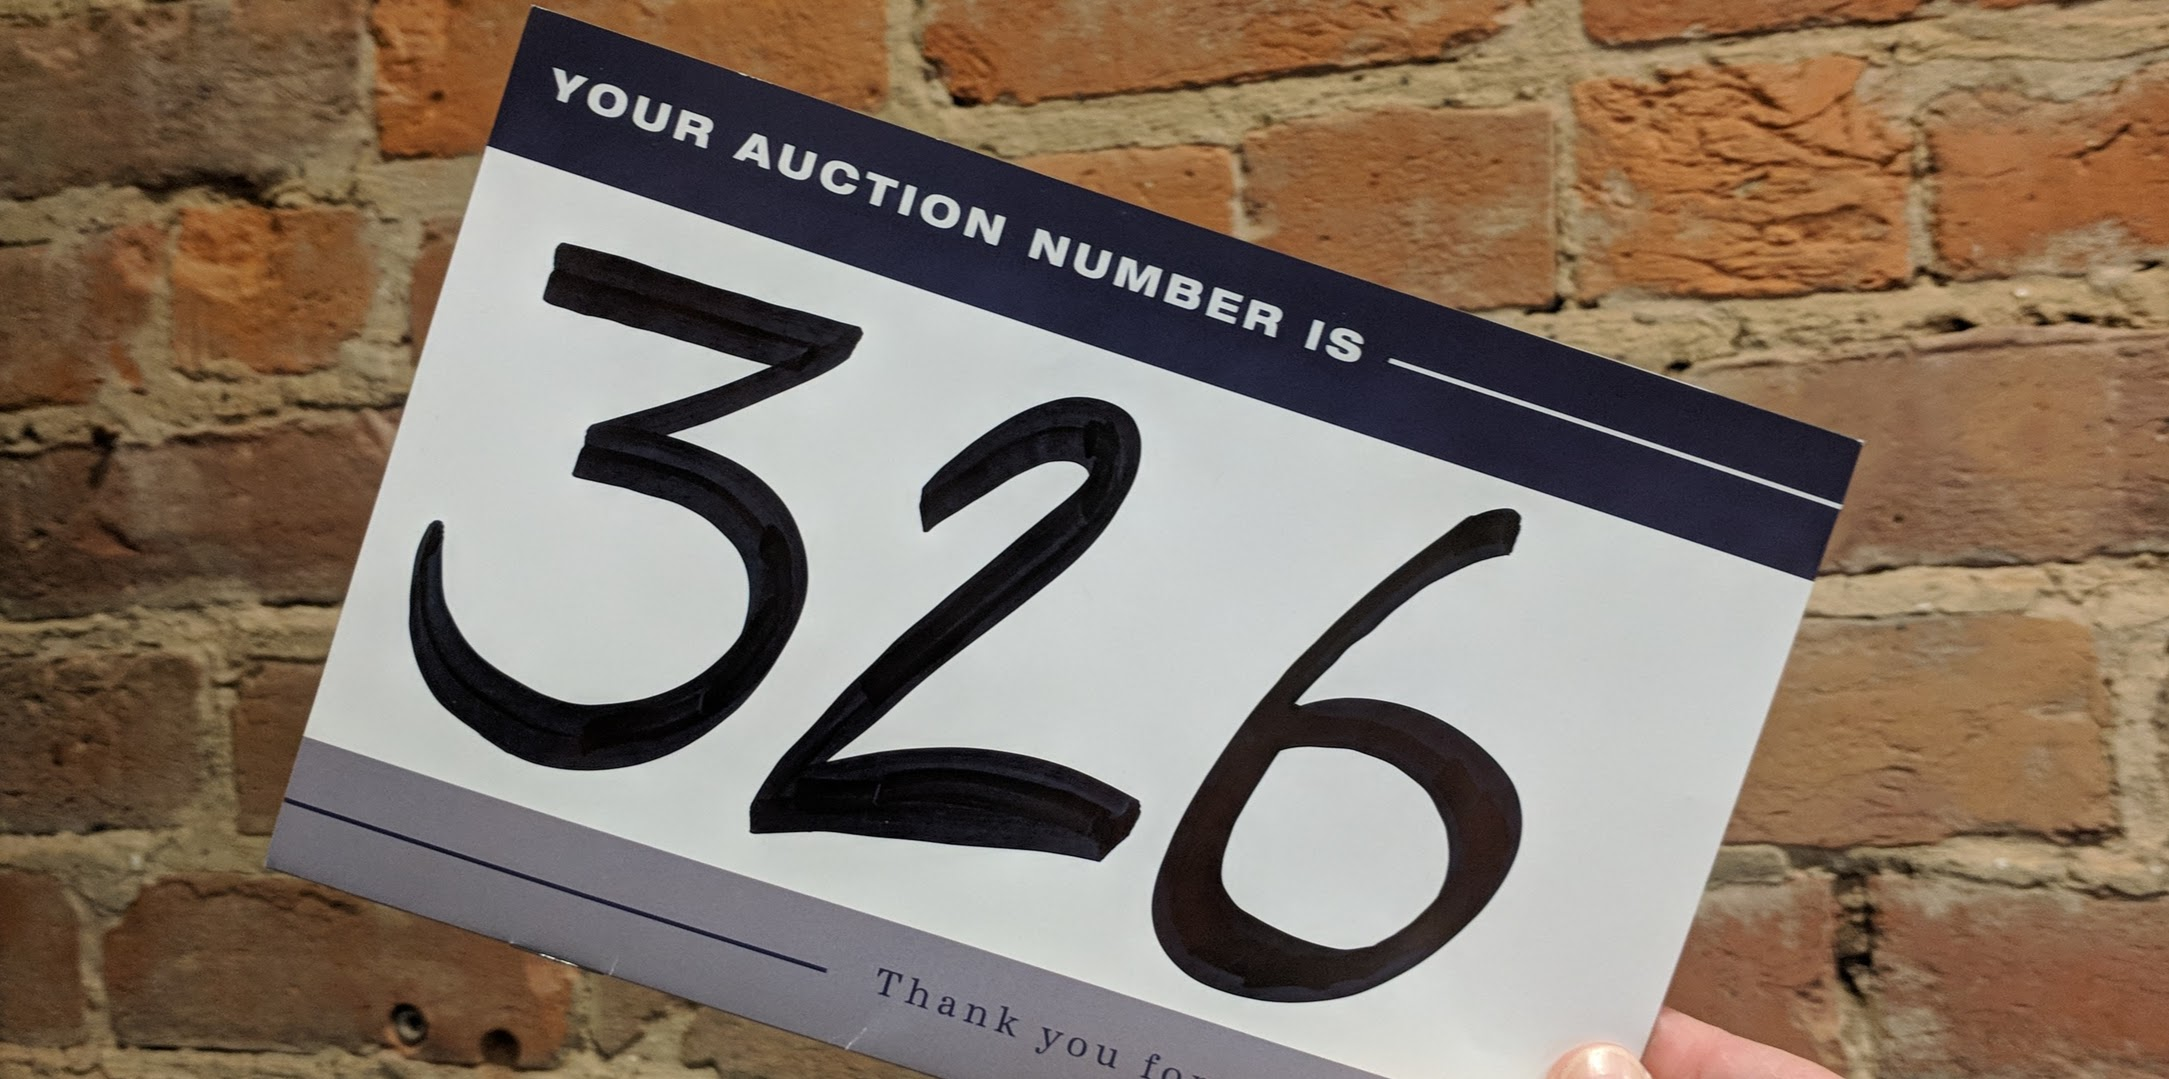 Turn In Your Bid Number to Give